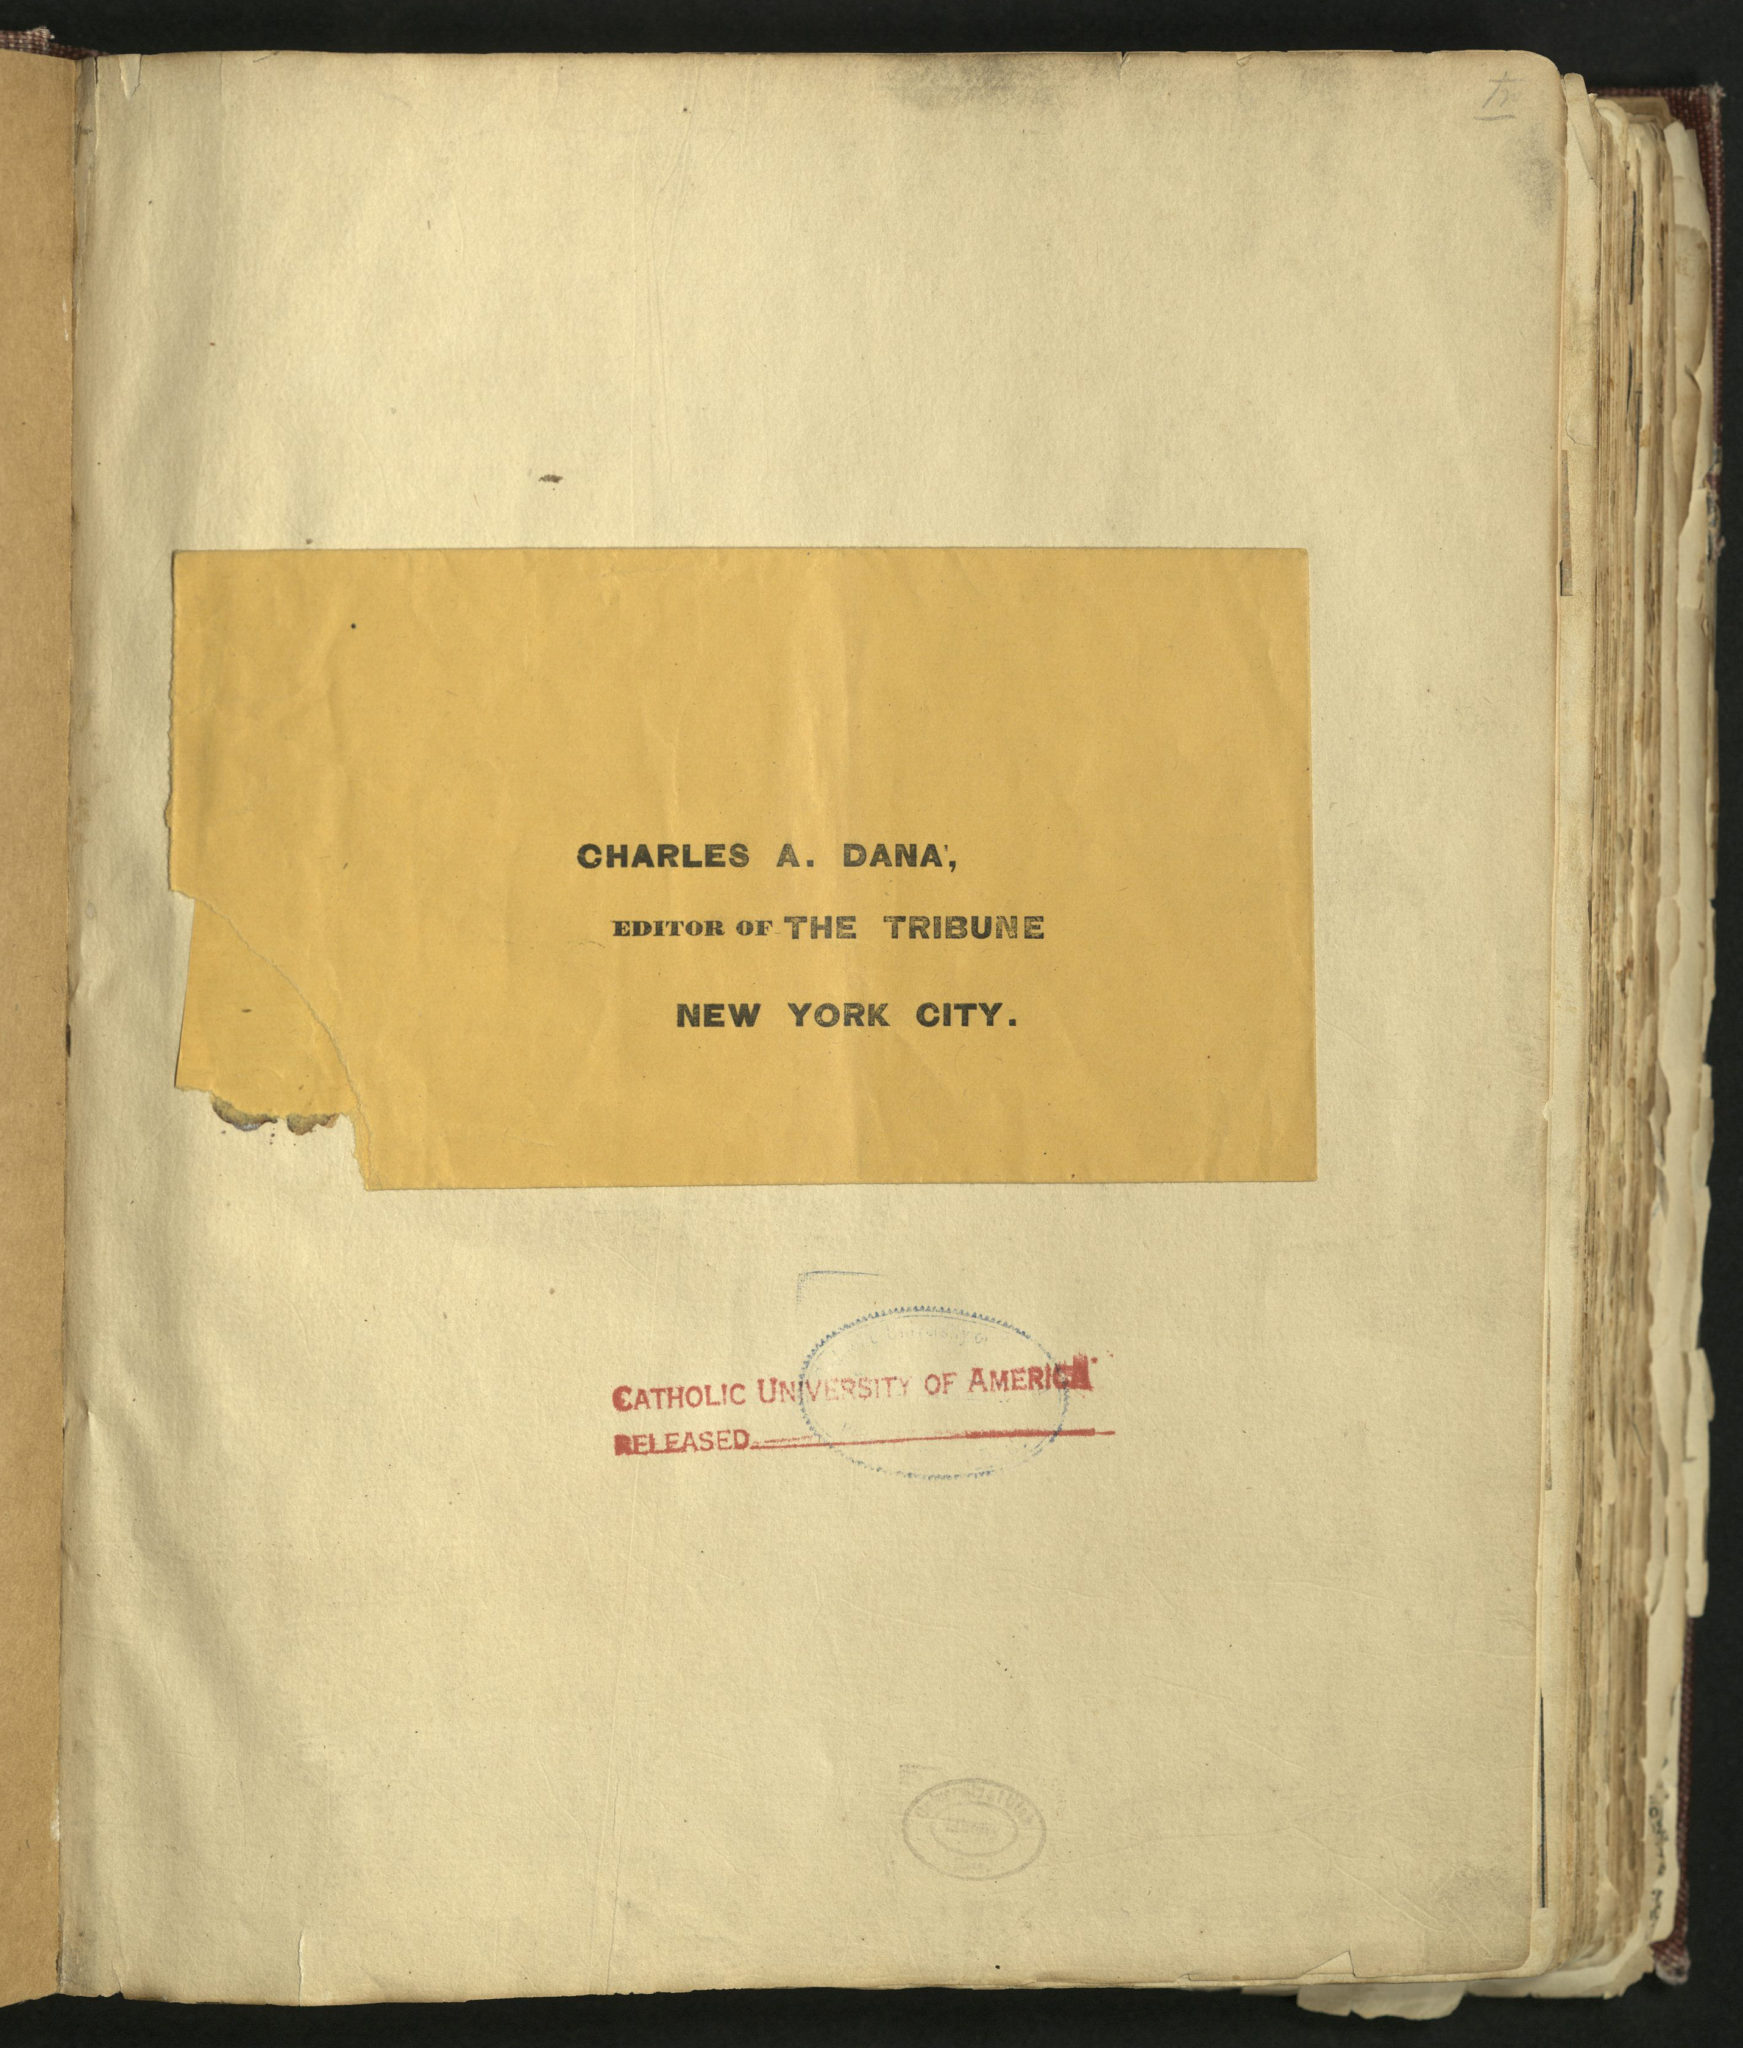 How to scrapbook newspaper clippings - Image Of Page Containing Editor S Envelope And Catholic University Of America Stamp